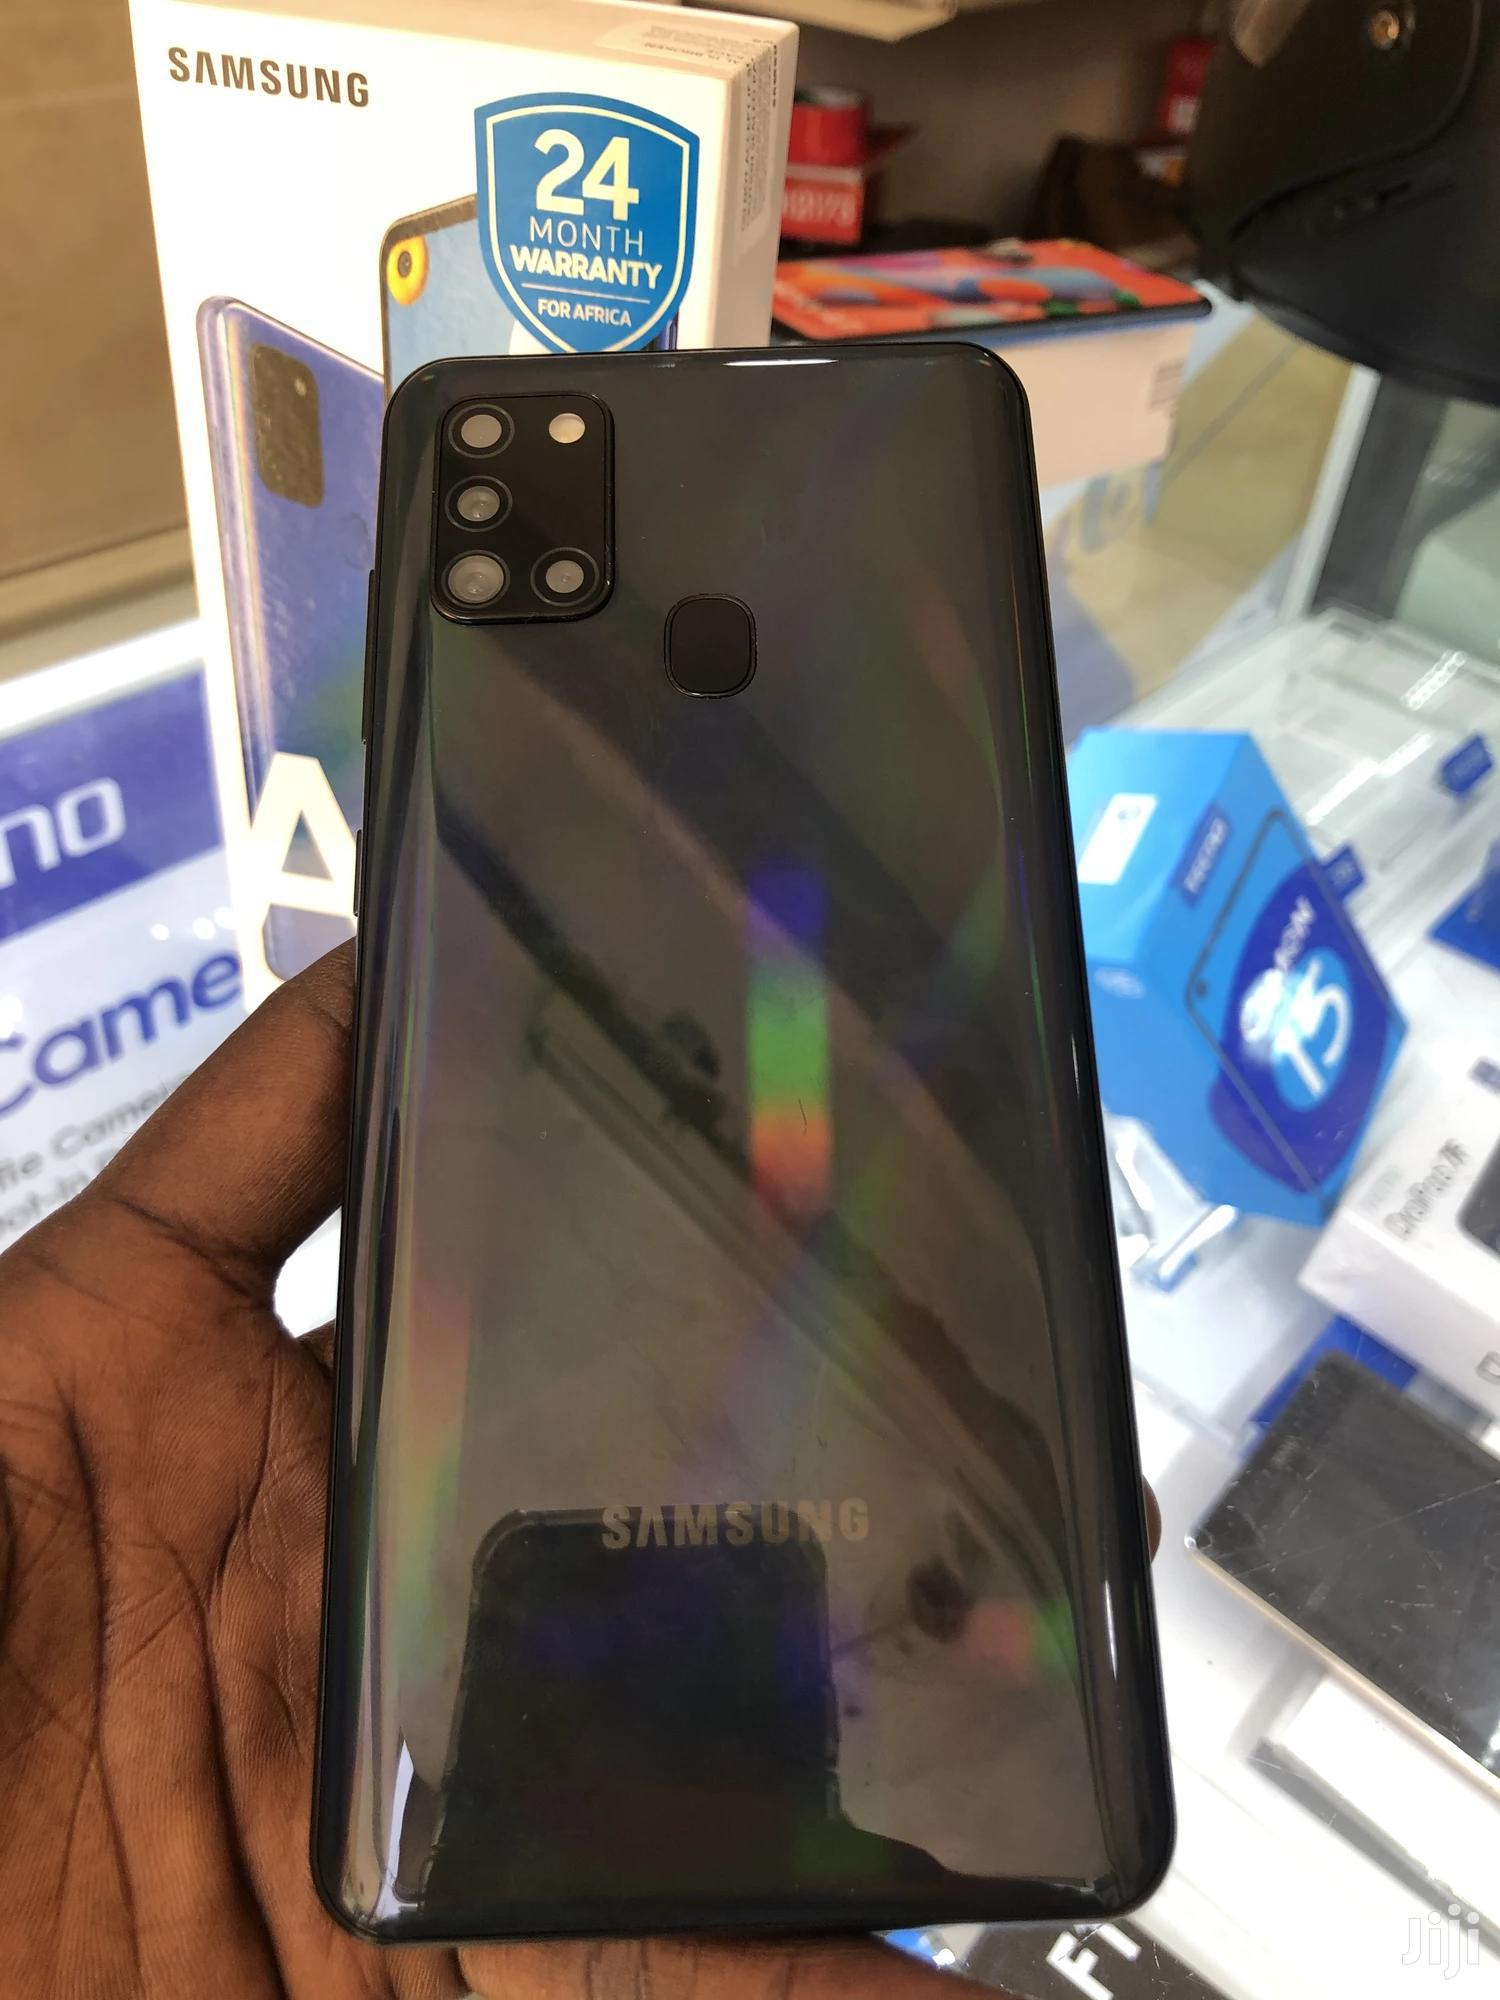 New Samsung Galaxy A21s 64 GB Black | Mobile Phones for sale in Adabraka, Greater Accra, Ghana